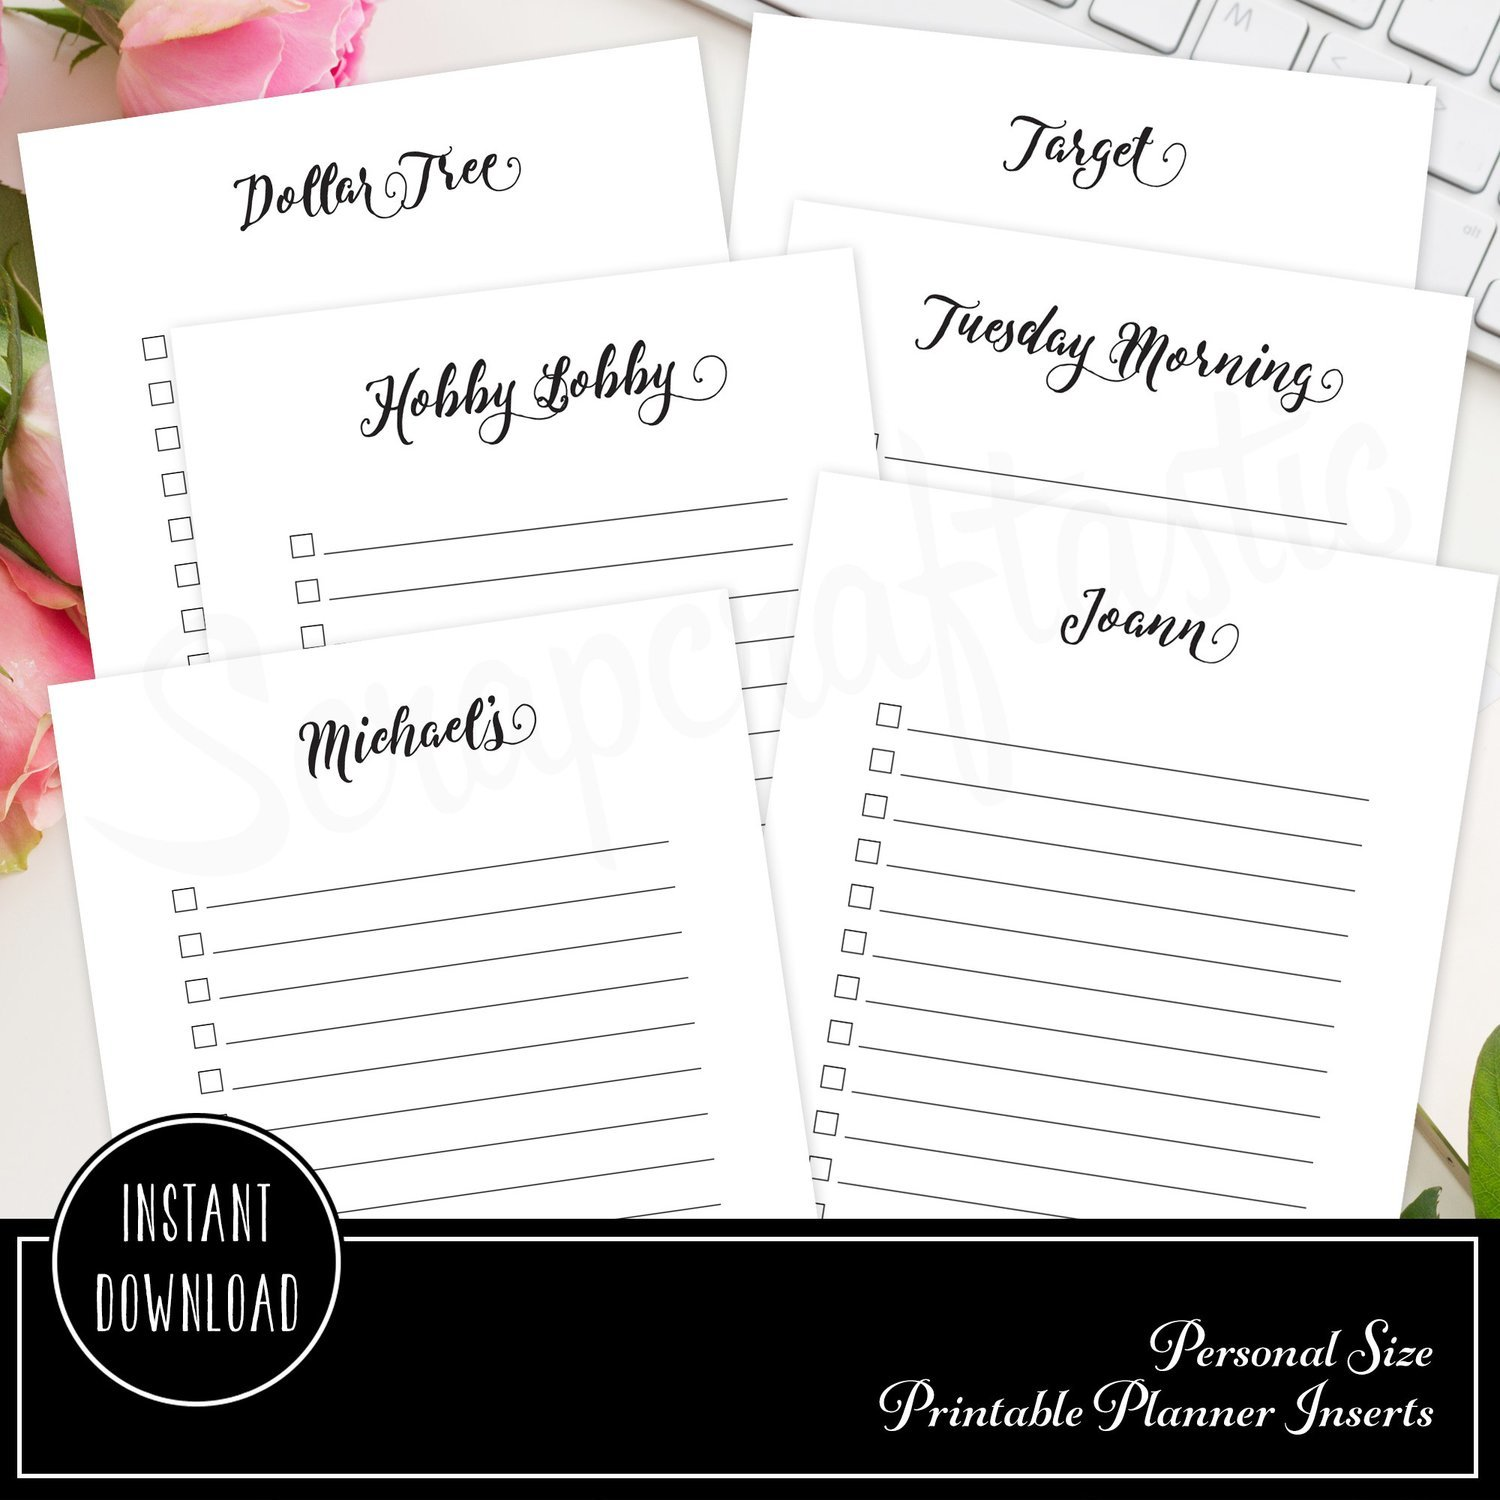 Shopping Check List Personal Size Printable Planner Inserts